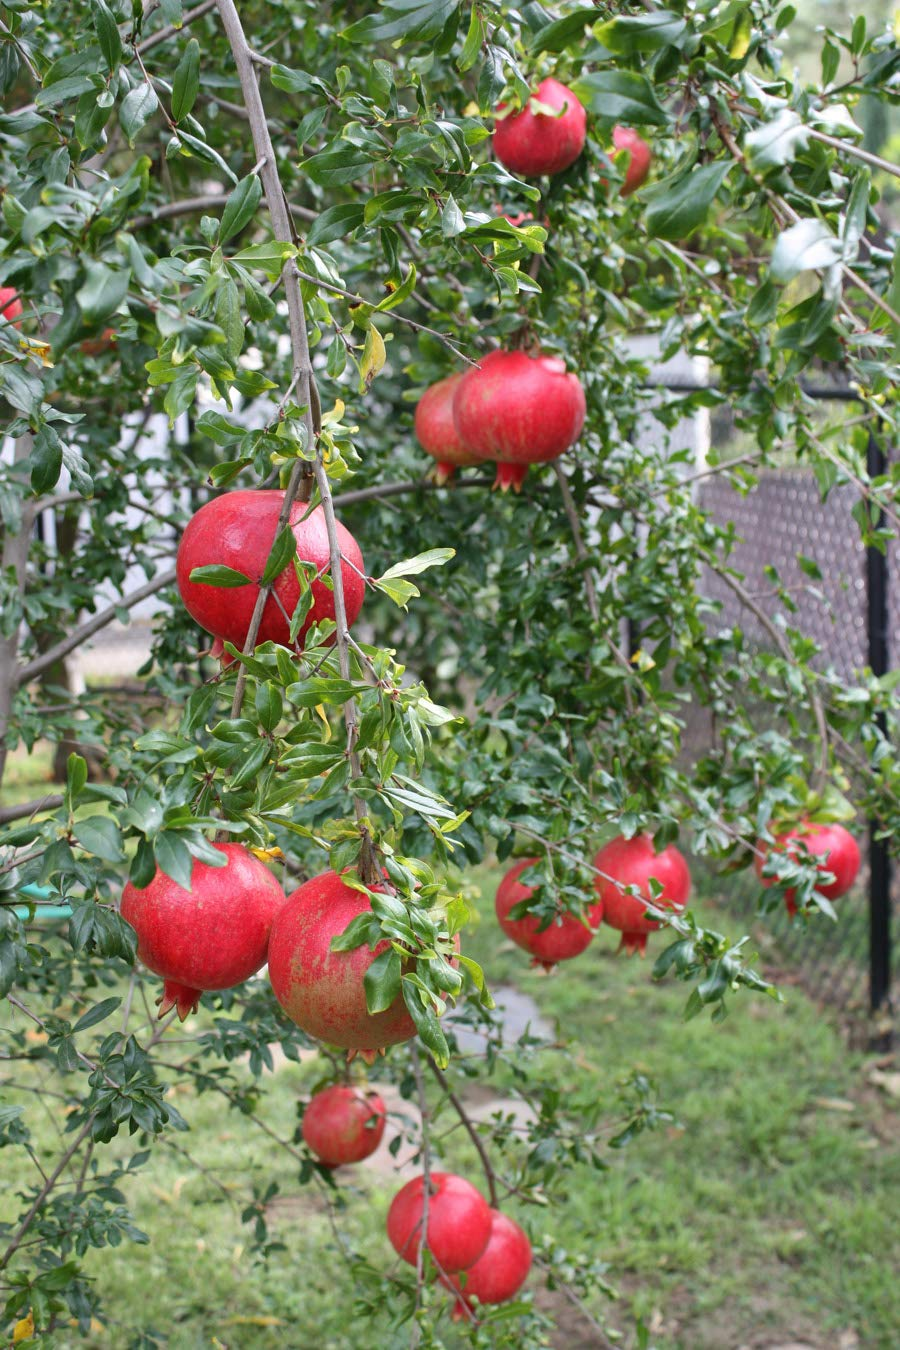 (3 Gallon Bare-Root Set of Two Plants) Russian Pomegranate Tree, considered The Sweetest of All Pomegranates. Very Cold and Heat Tolerant, Produces Very Sweet red Fruit. by Pixies Gardens